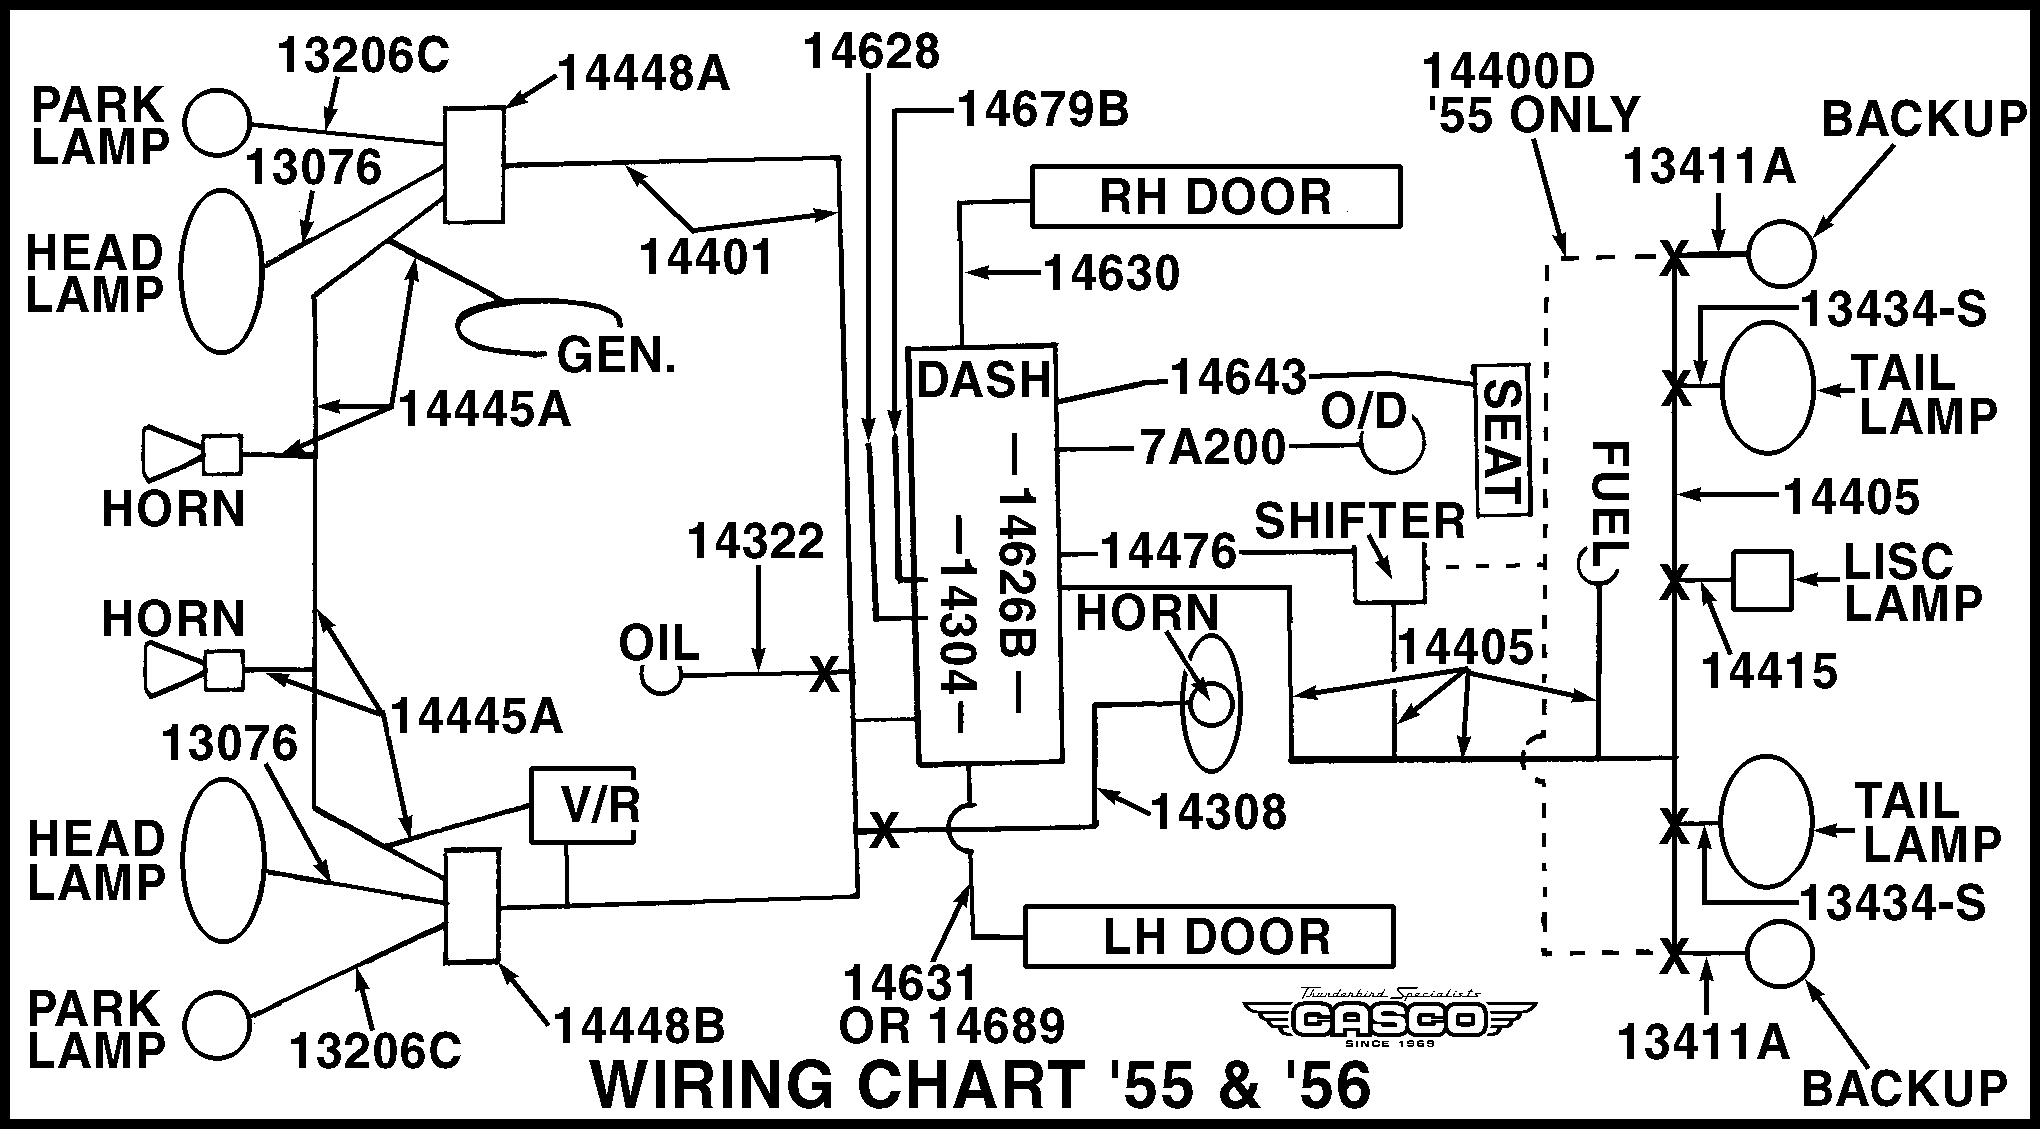 Junction Block Single Stack 55 6 1 Per Car Wiring Images Wiringchart 56